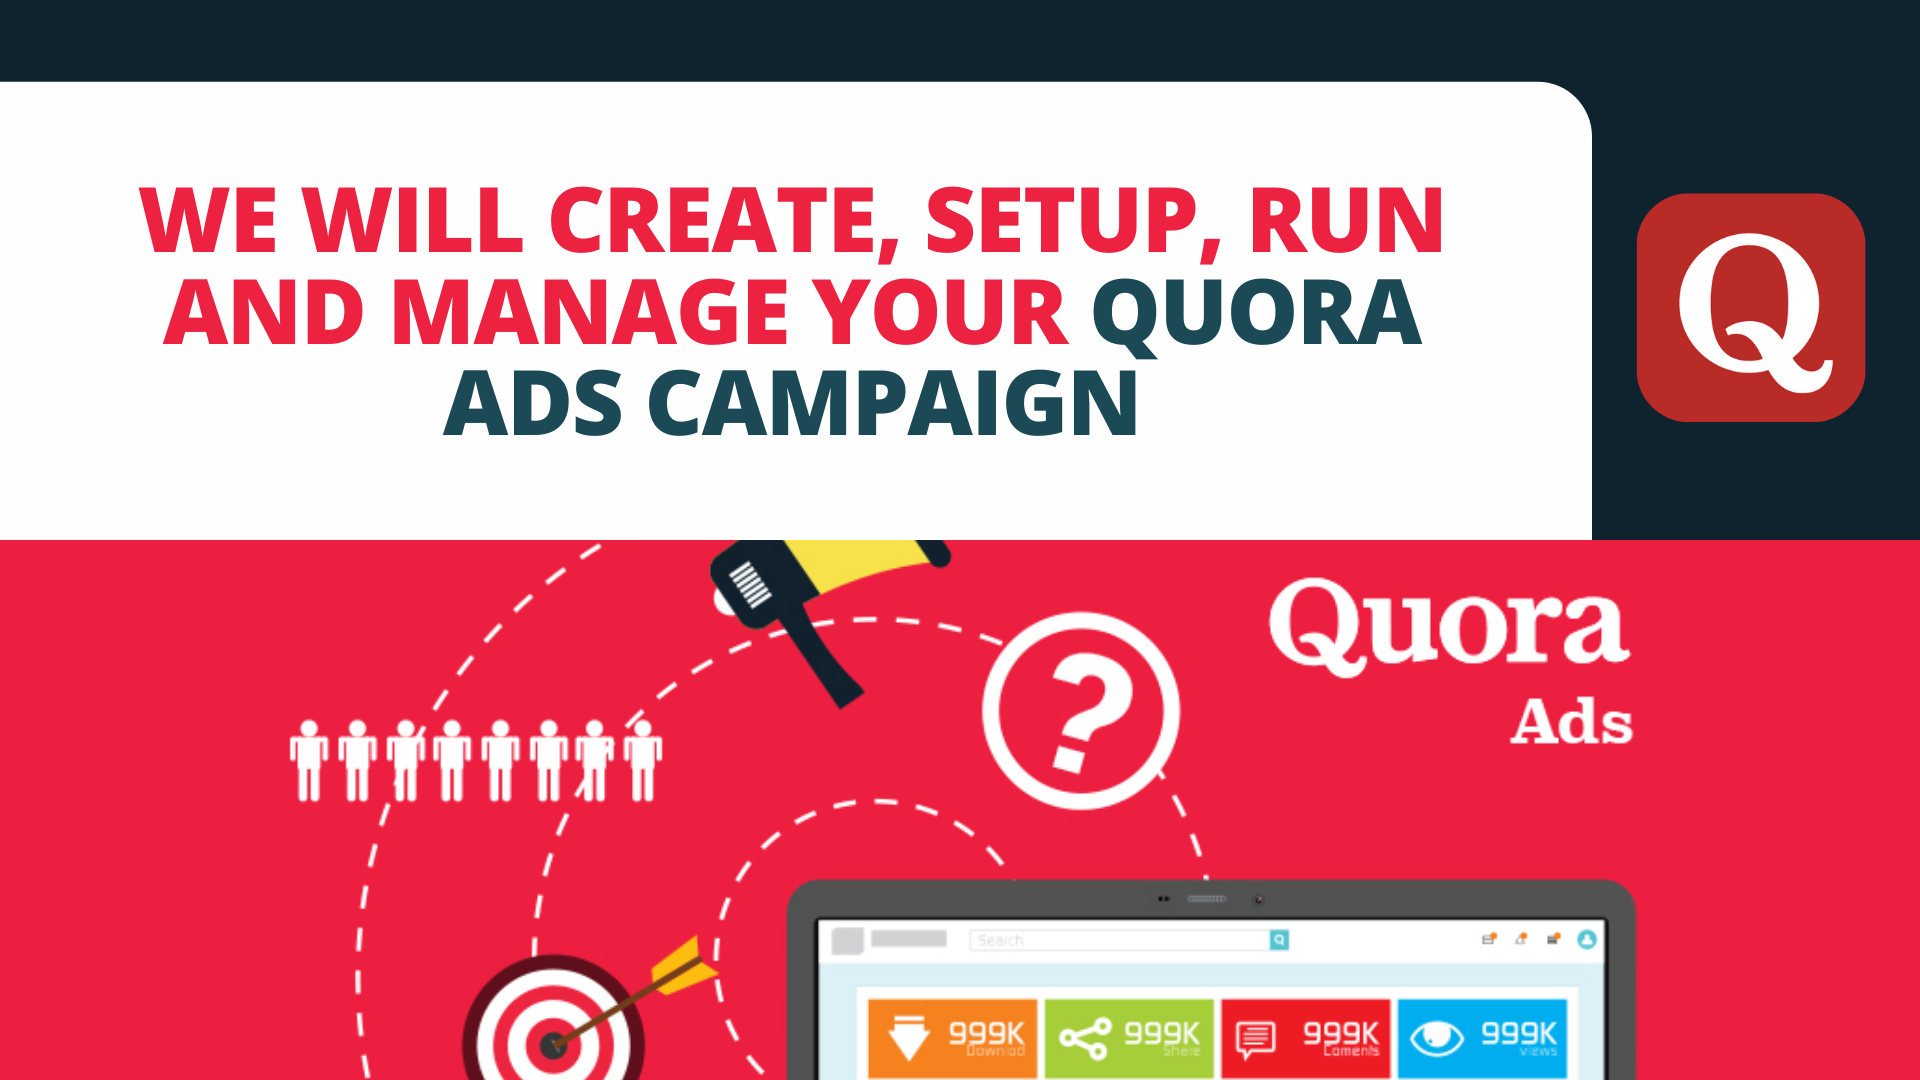 I Will Create,  Setup,  Run and Manage Your Quora Ads Campaign